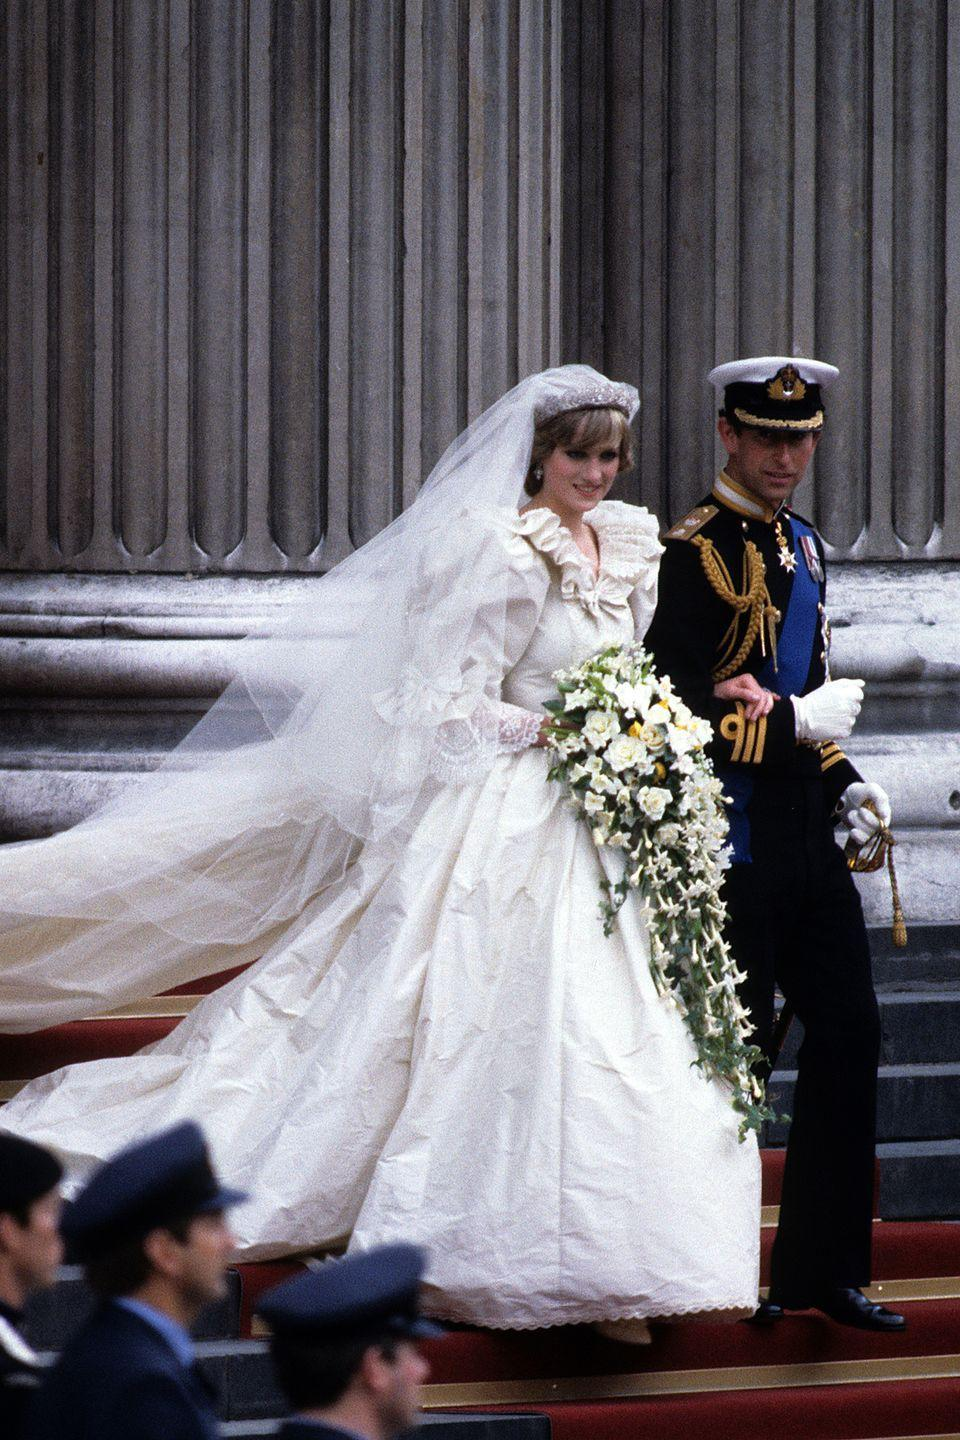 "<p>In the seven months leading up the wedding, Princess Diana's waistline shrunk over 5 inches as she lost more and more weight. (<a href=""http://www.goodhousekeeping.com/life/news/a44618/princess-diana-audio-tape-transcripts/"" rel=""nofollow noopener"" target=""_blank"" data-ylk=""slk:She would later open up about her struggles with eating disorders."" class=""link rapid-noclick-resp"">She would later open up about her struggles with eating disorders.</a>) The designers made five different bodices to fit, and ultimately stitched her into the final version that day. </p>"